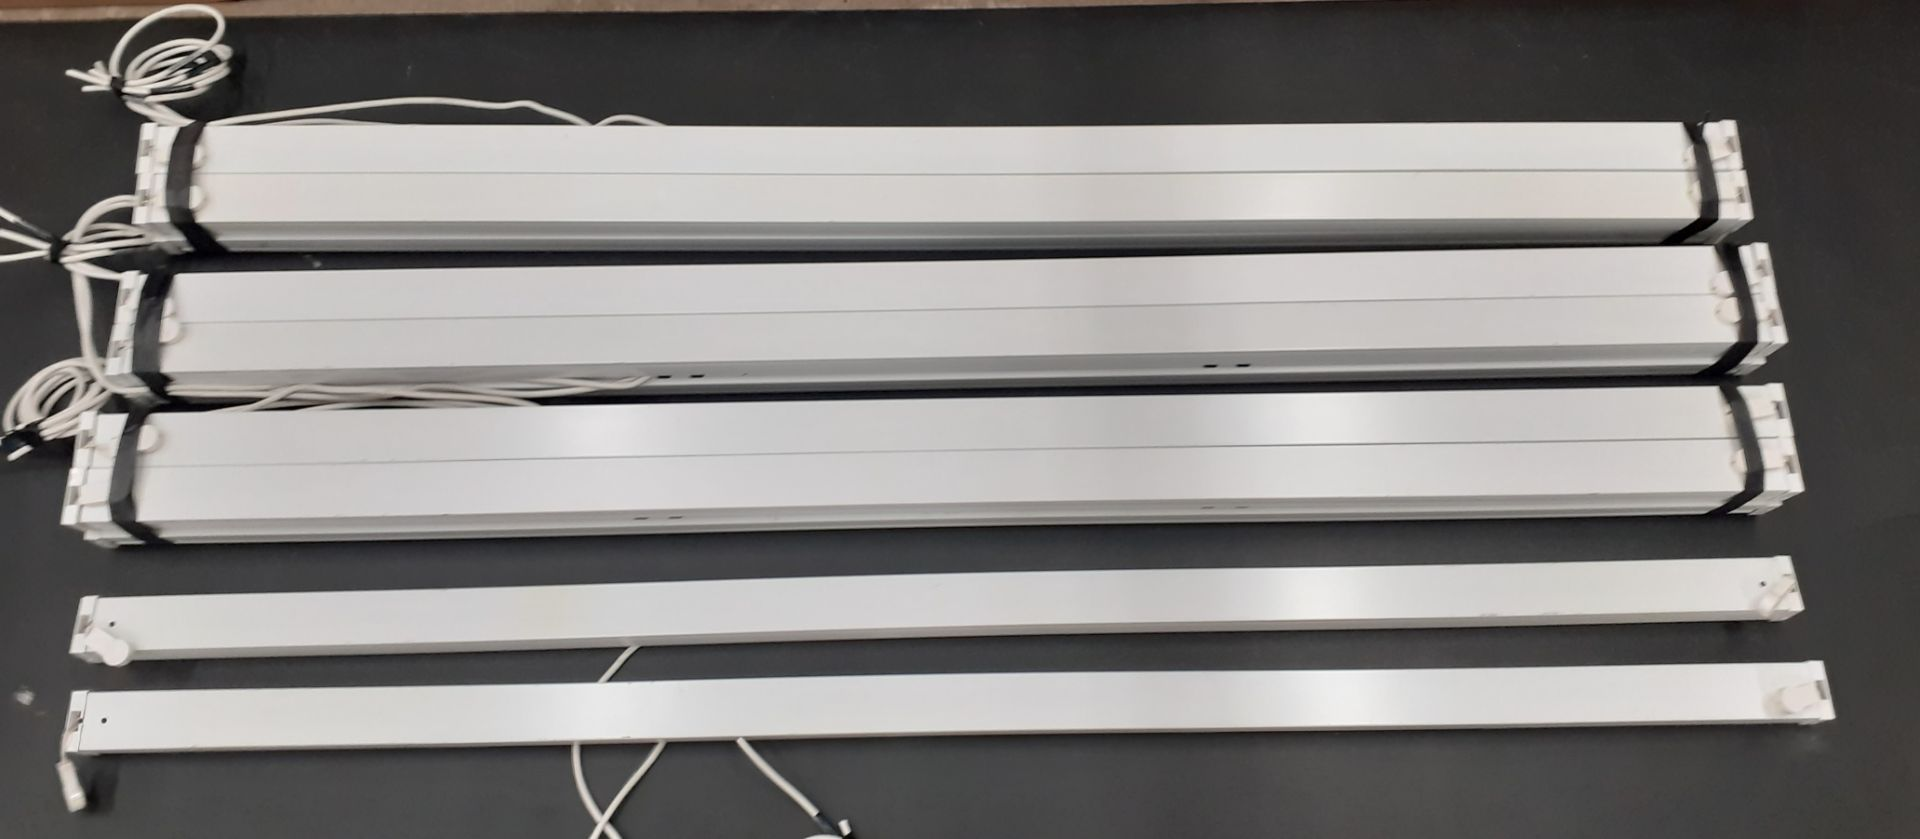 14 x 6ft Thorn 70W T26 Fluorescent Light Fittings (white)-excellent condition, used for one day only